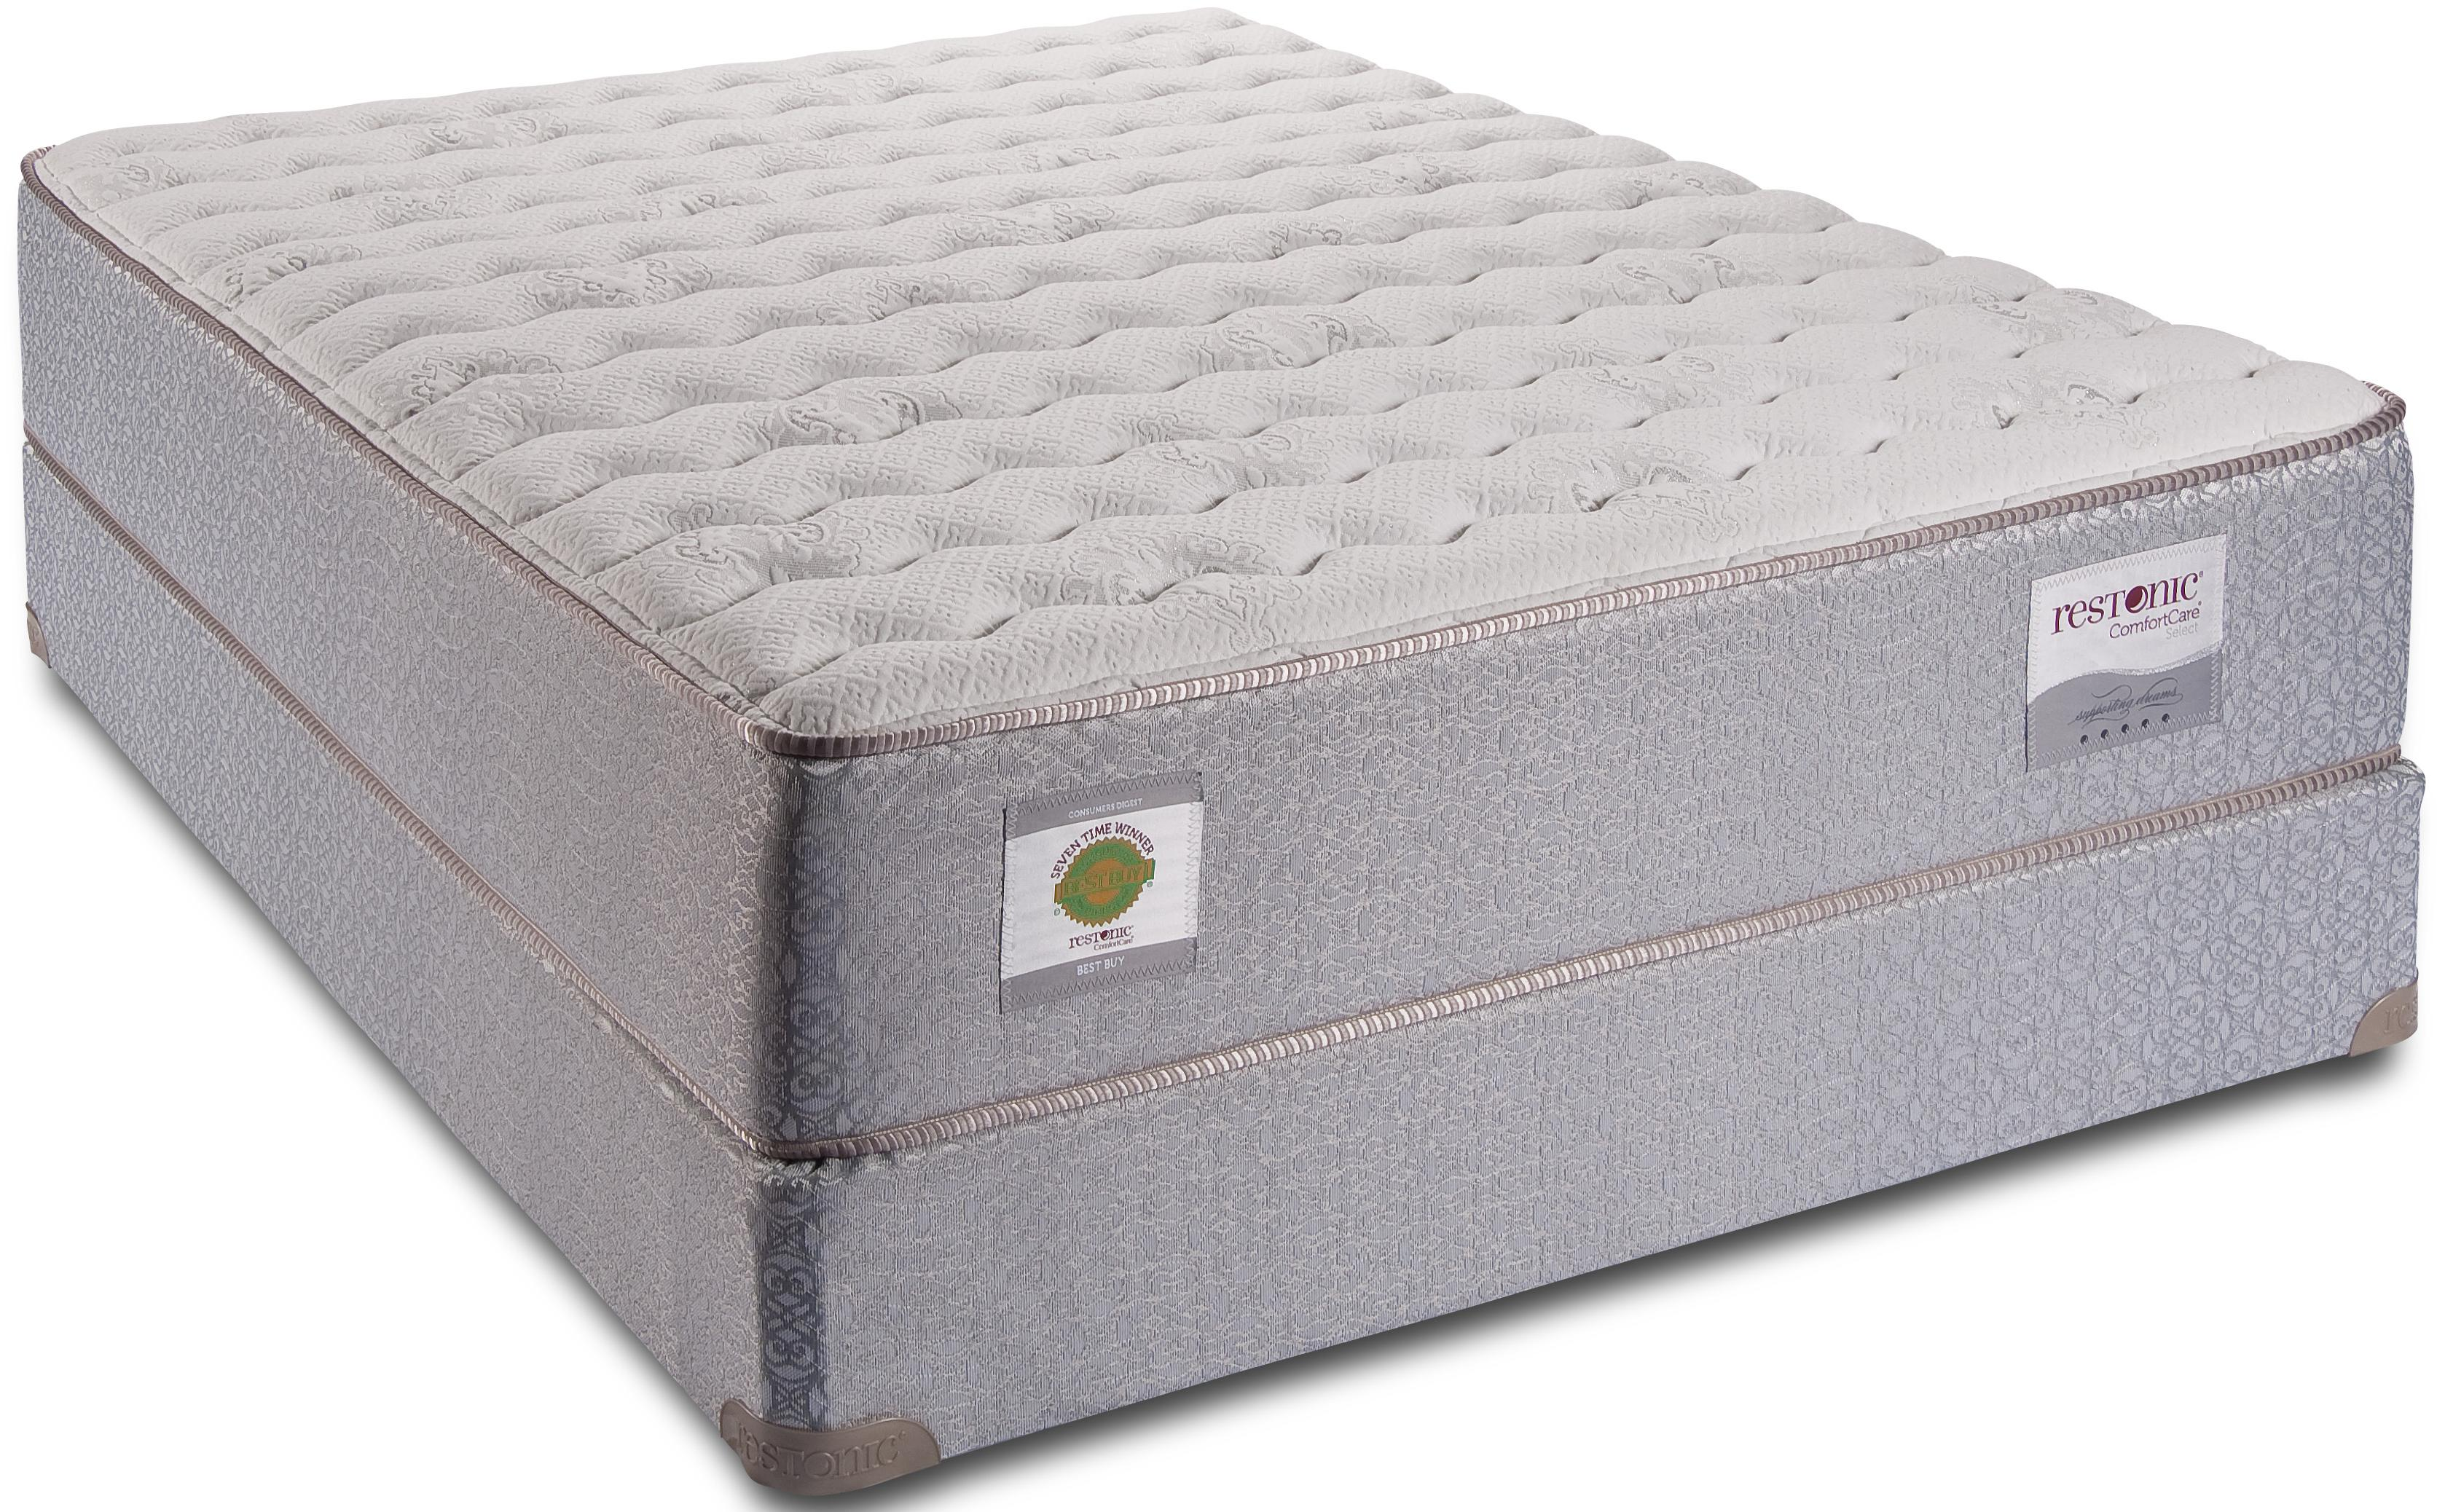 king firm mattress by restonic wolf and gardiner wolf furniture